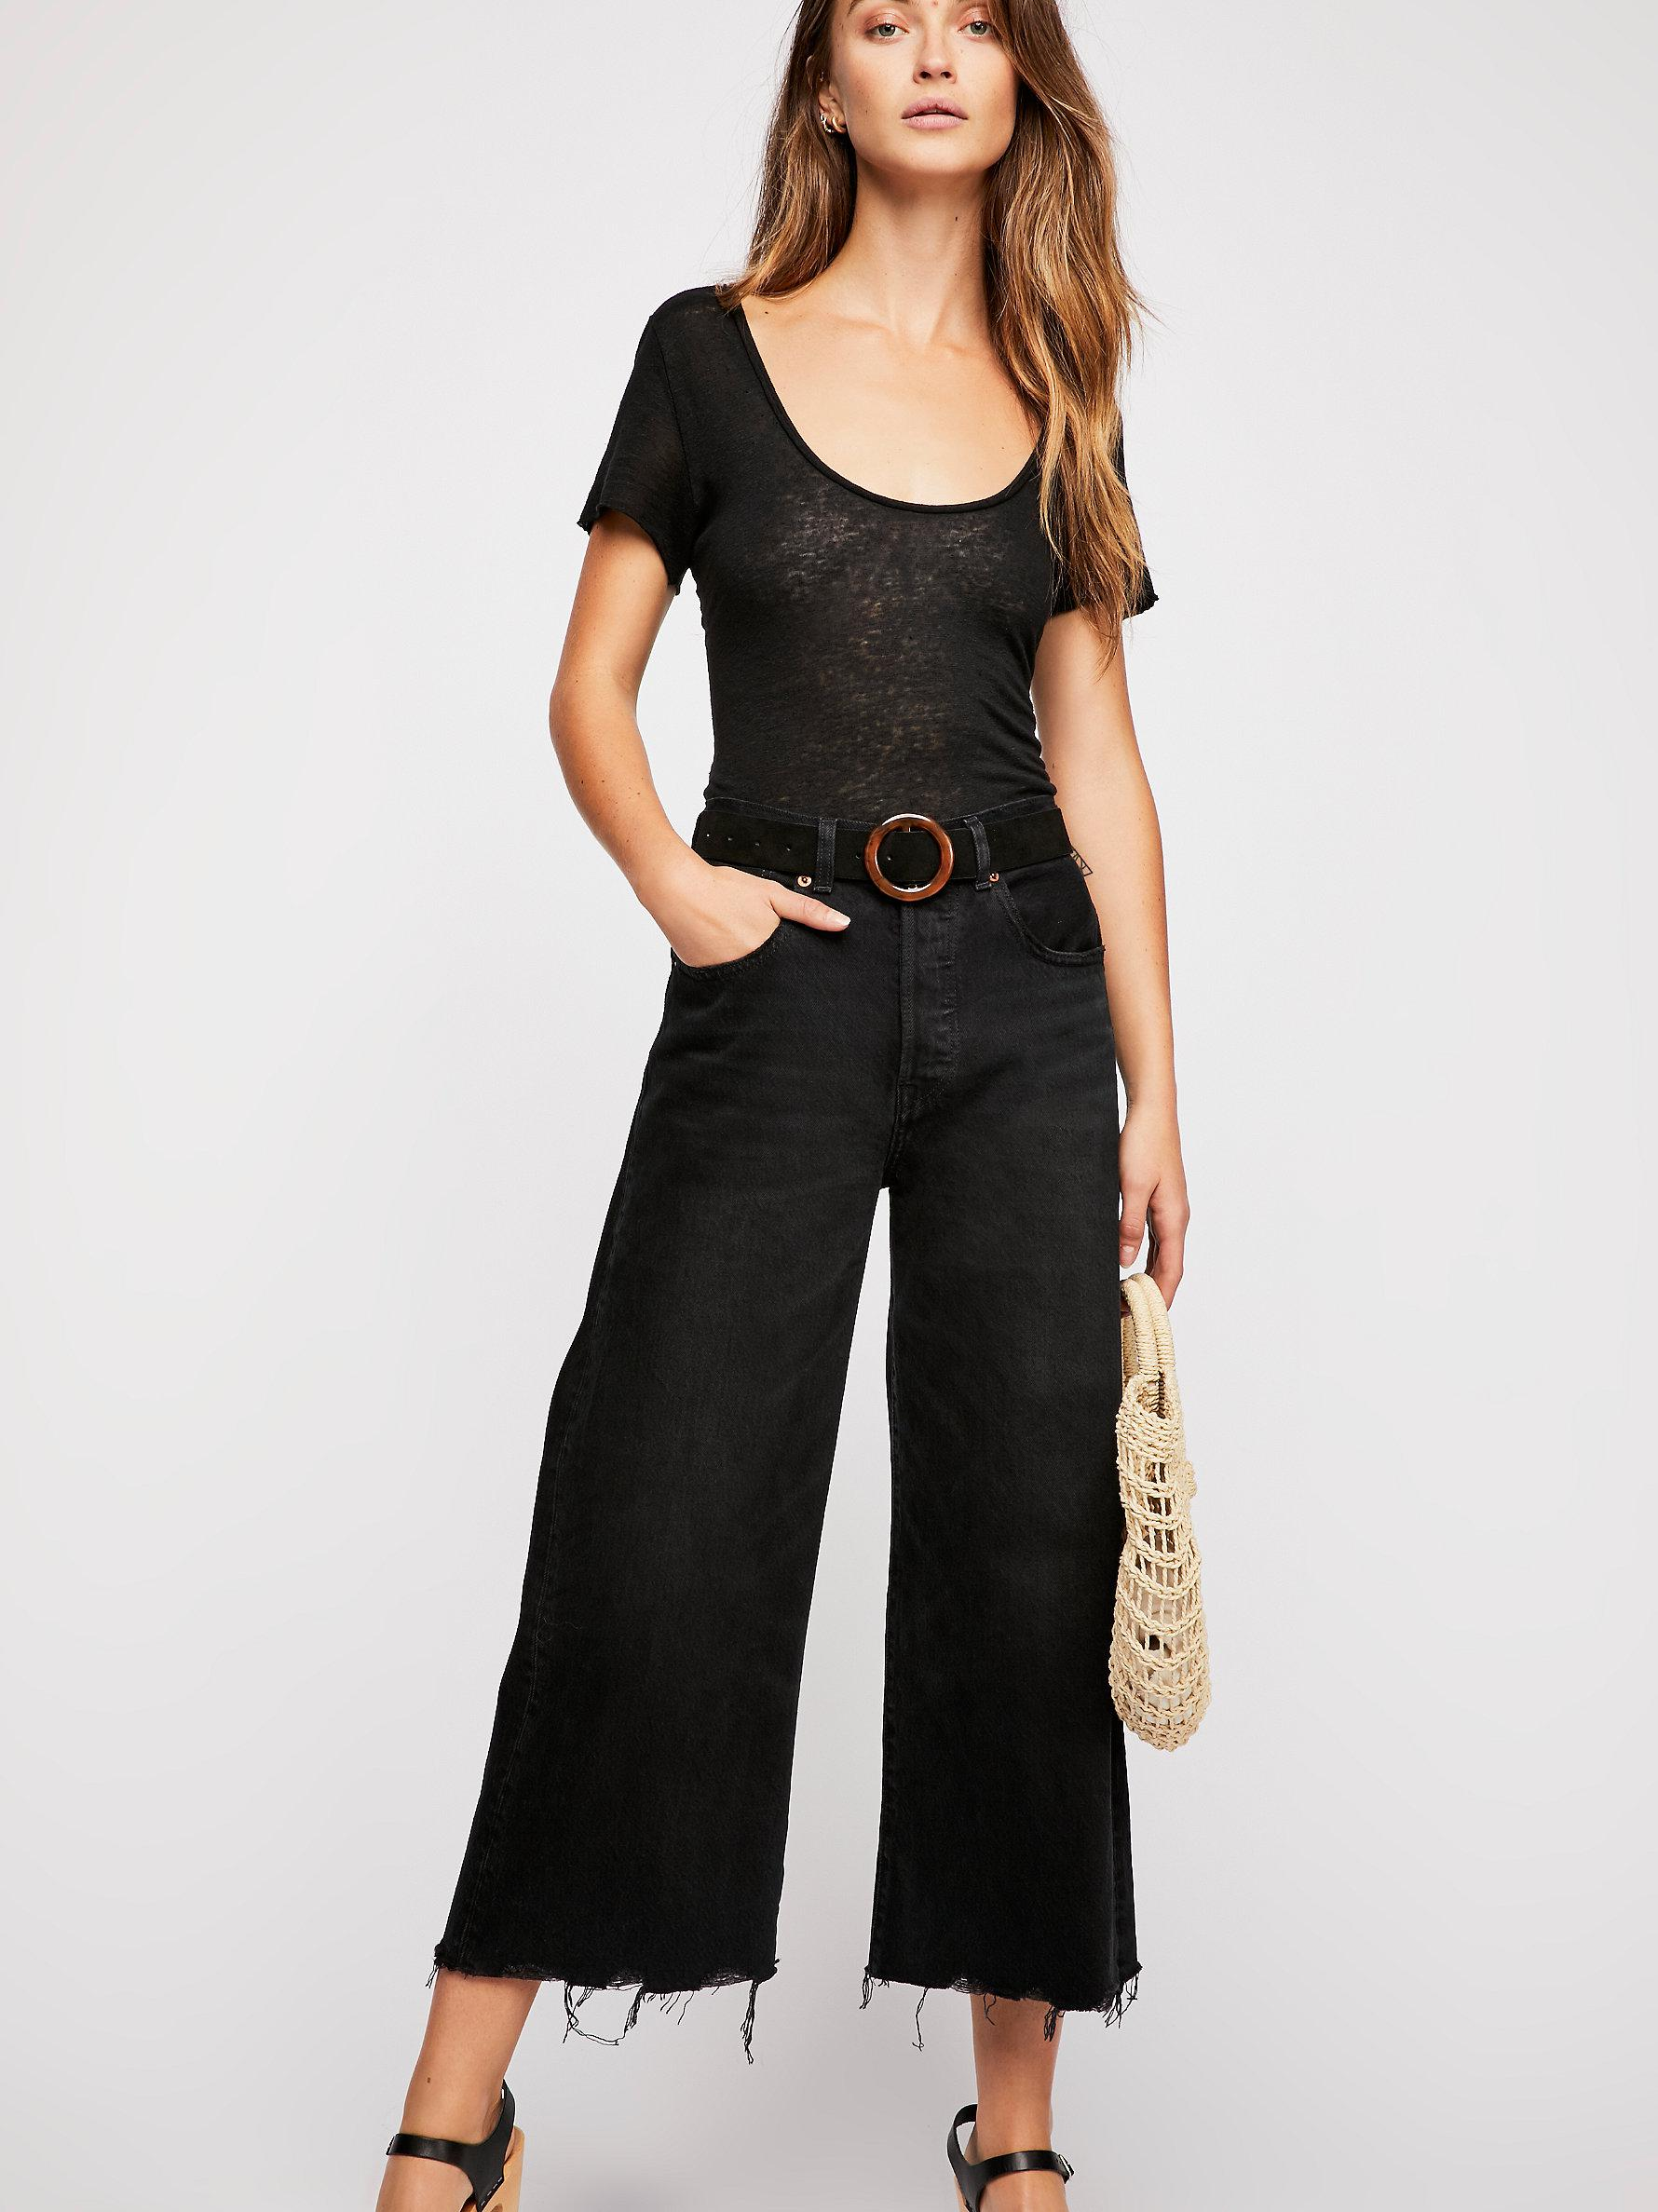 Free Wide Water Leg Levi's People Lyst Jeans In Black High IpPRnpqr